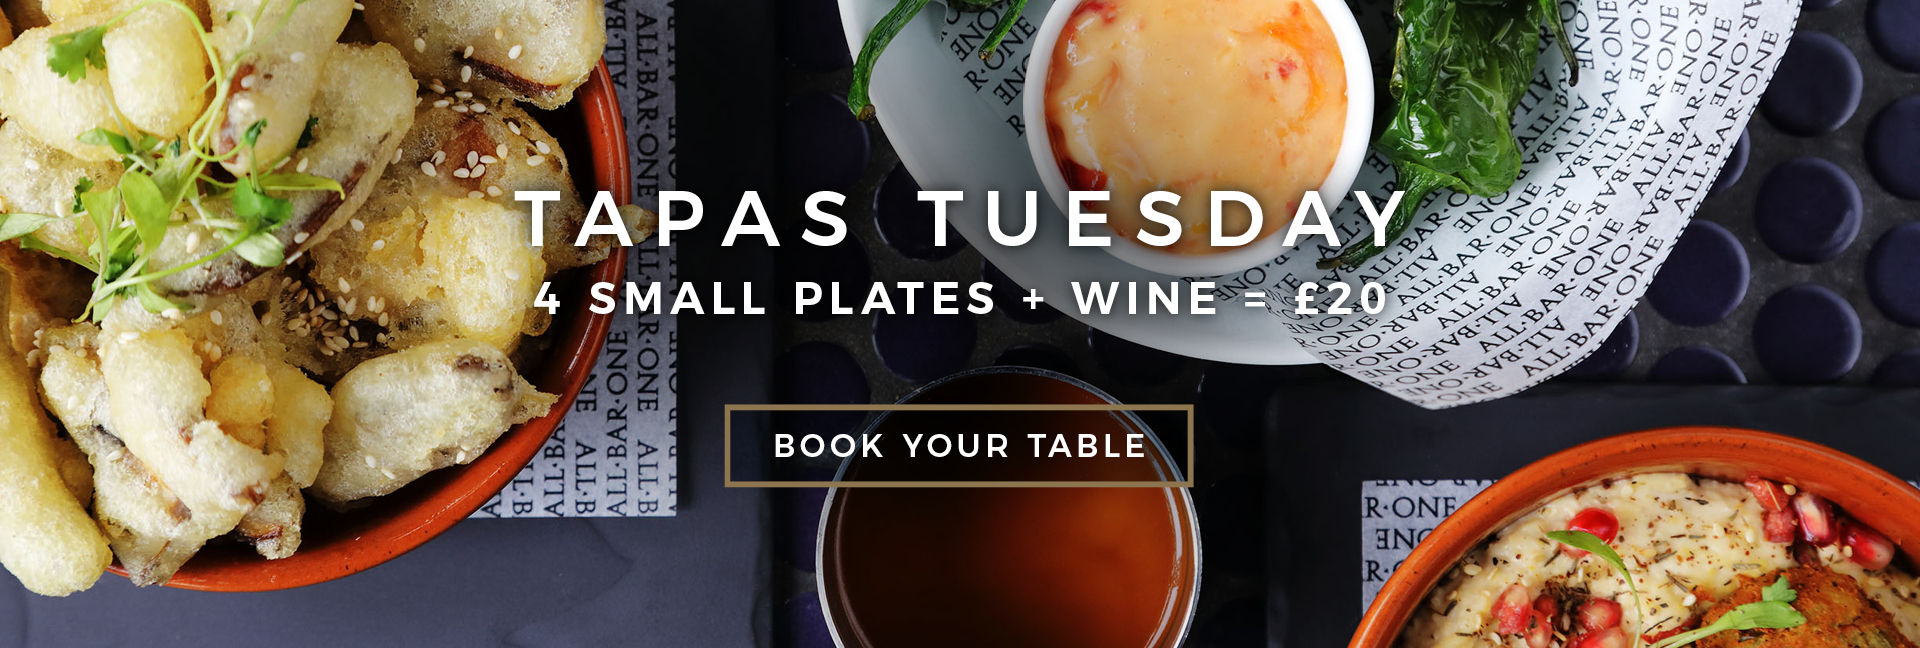 Tapas Tuesday at All Bar One Wimbledon - Book now